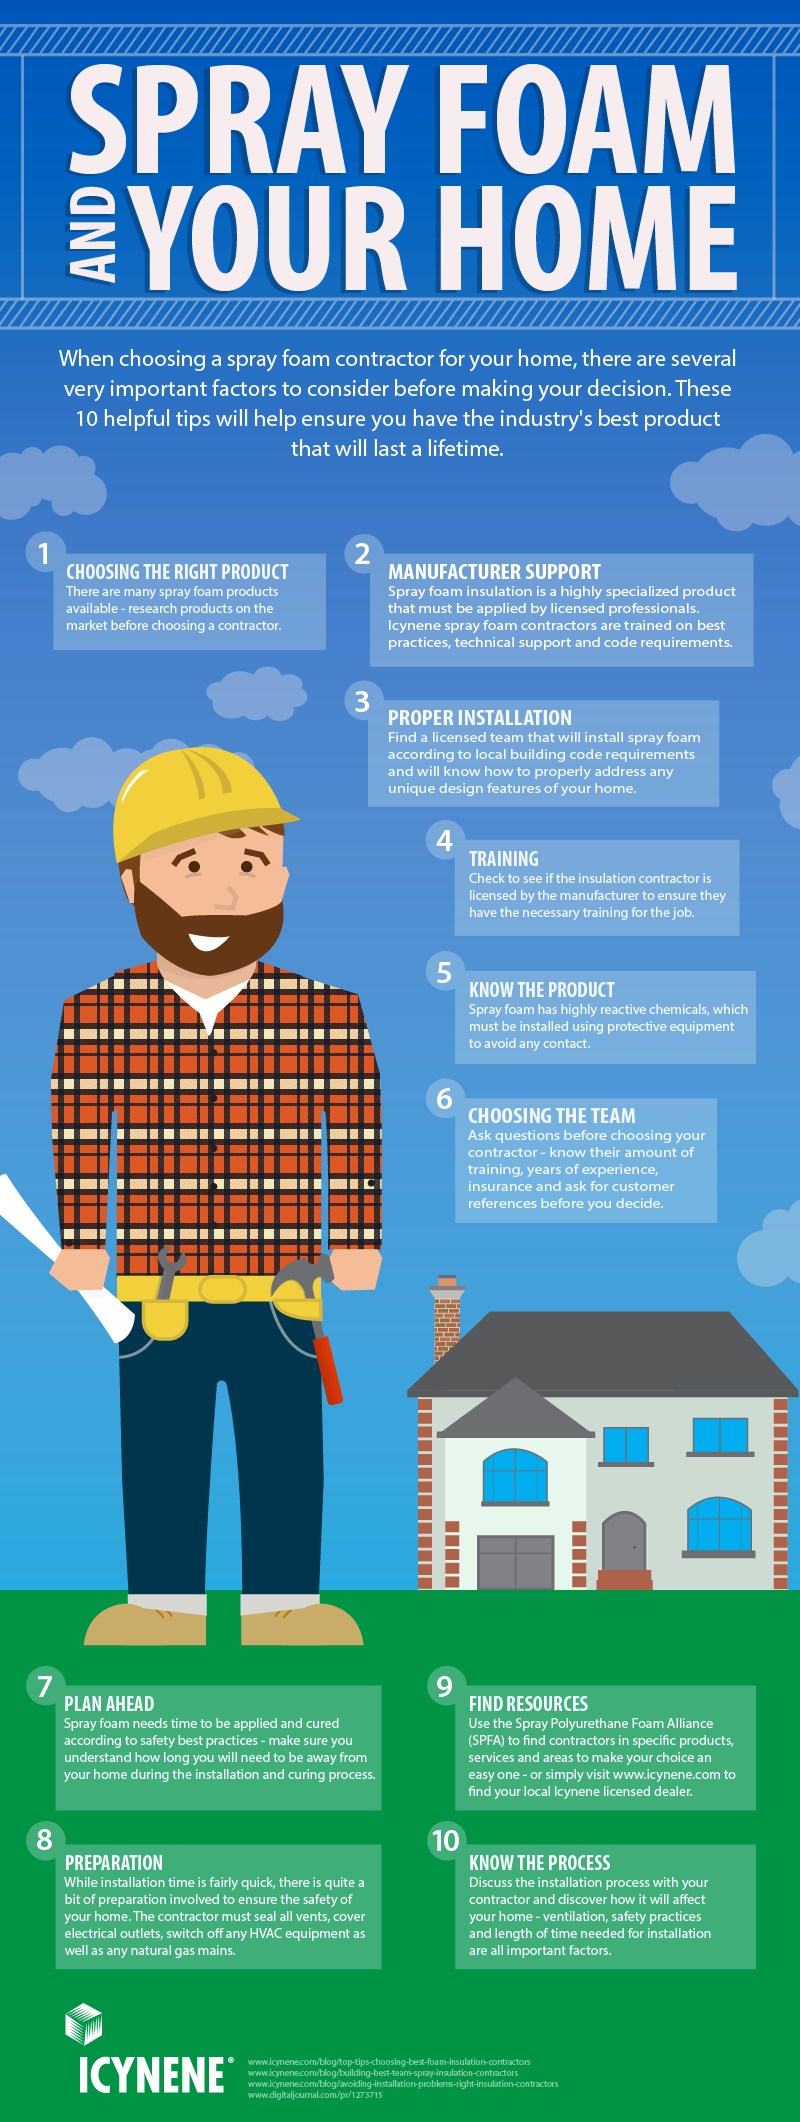 Spray foam and your home